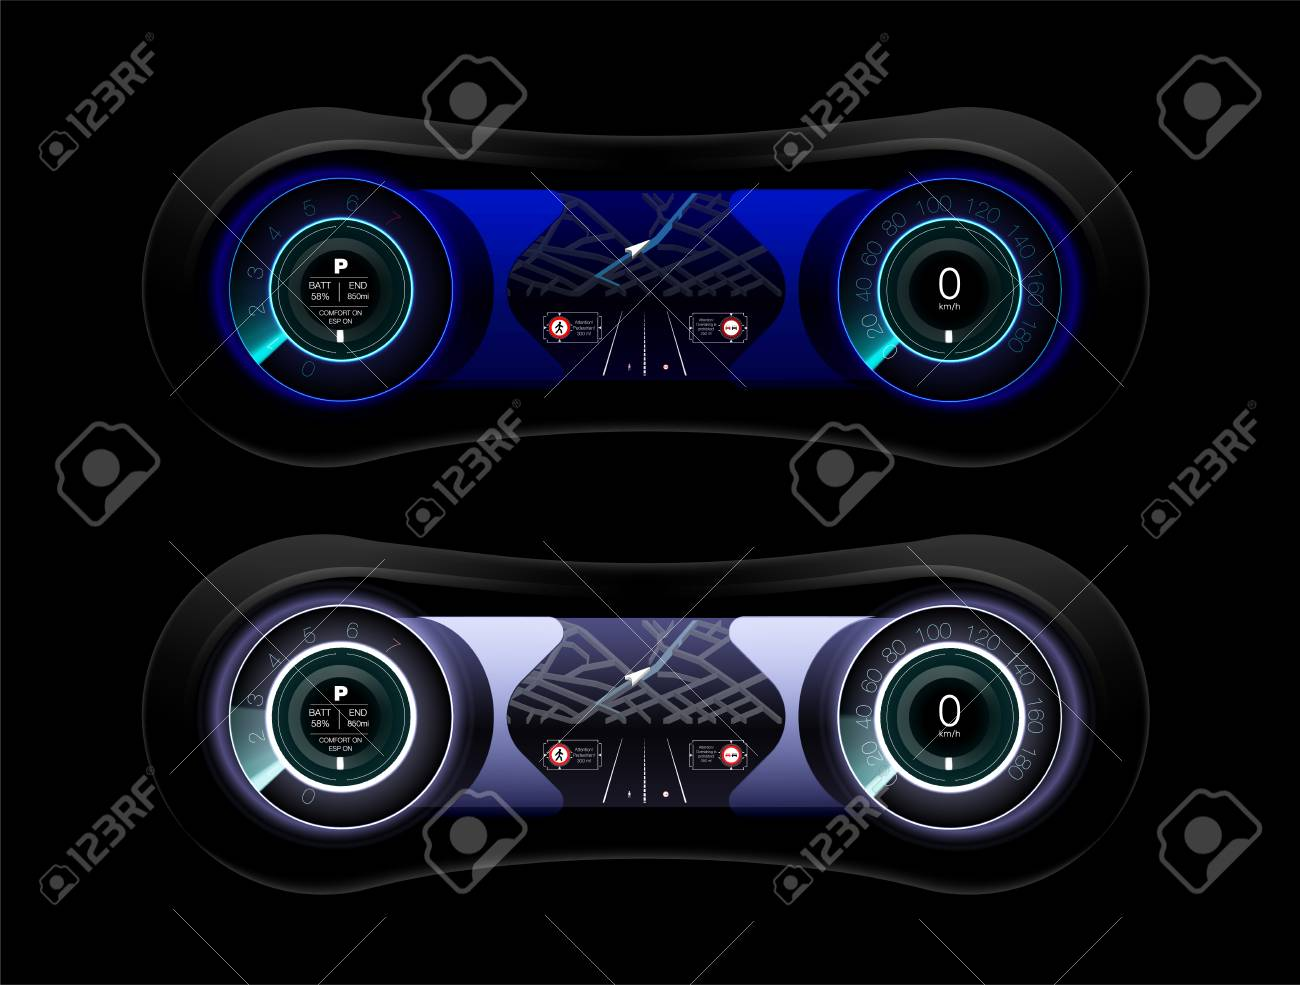 abstract futuristic car dashboard